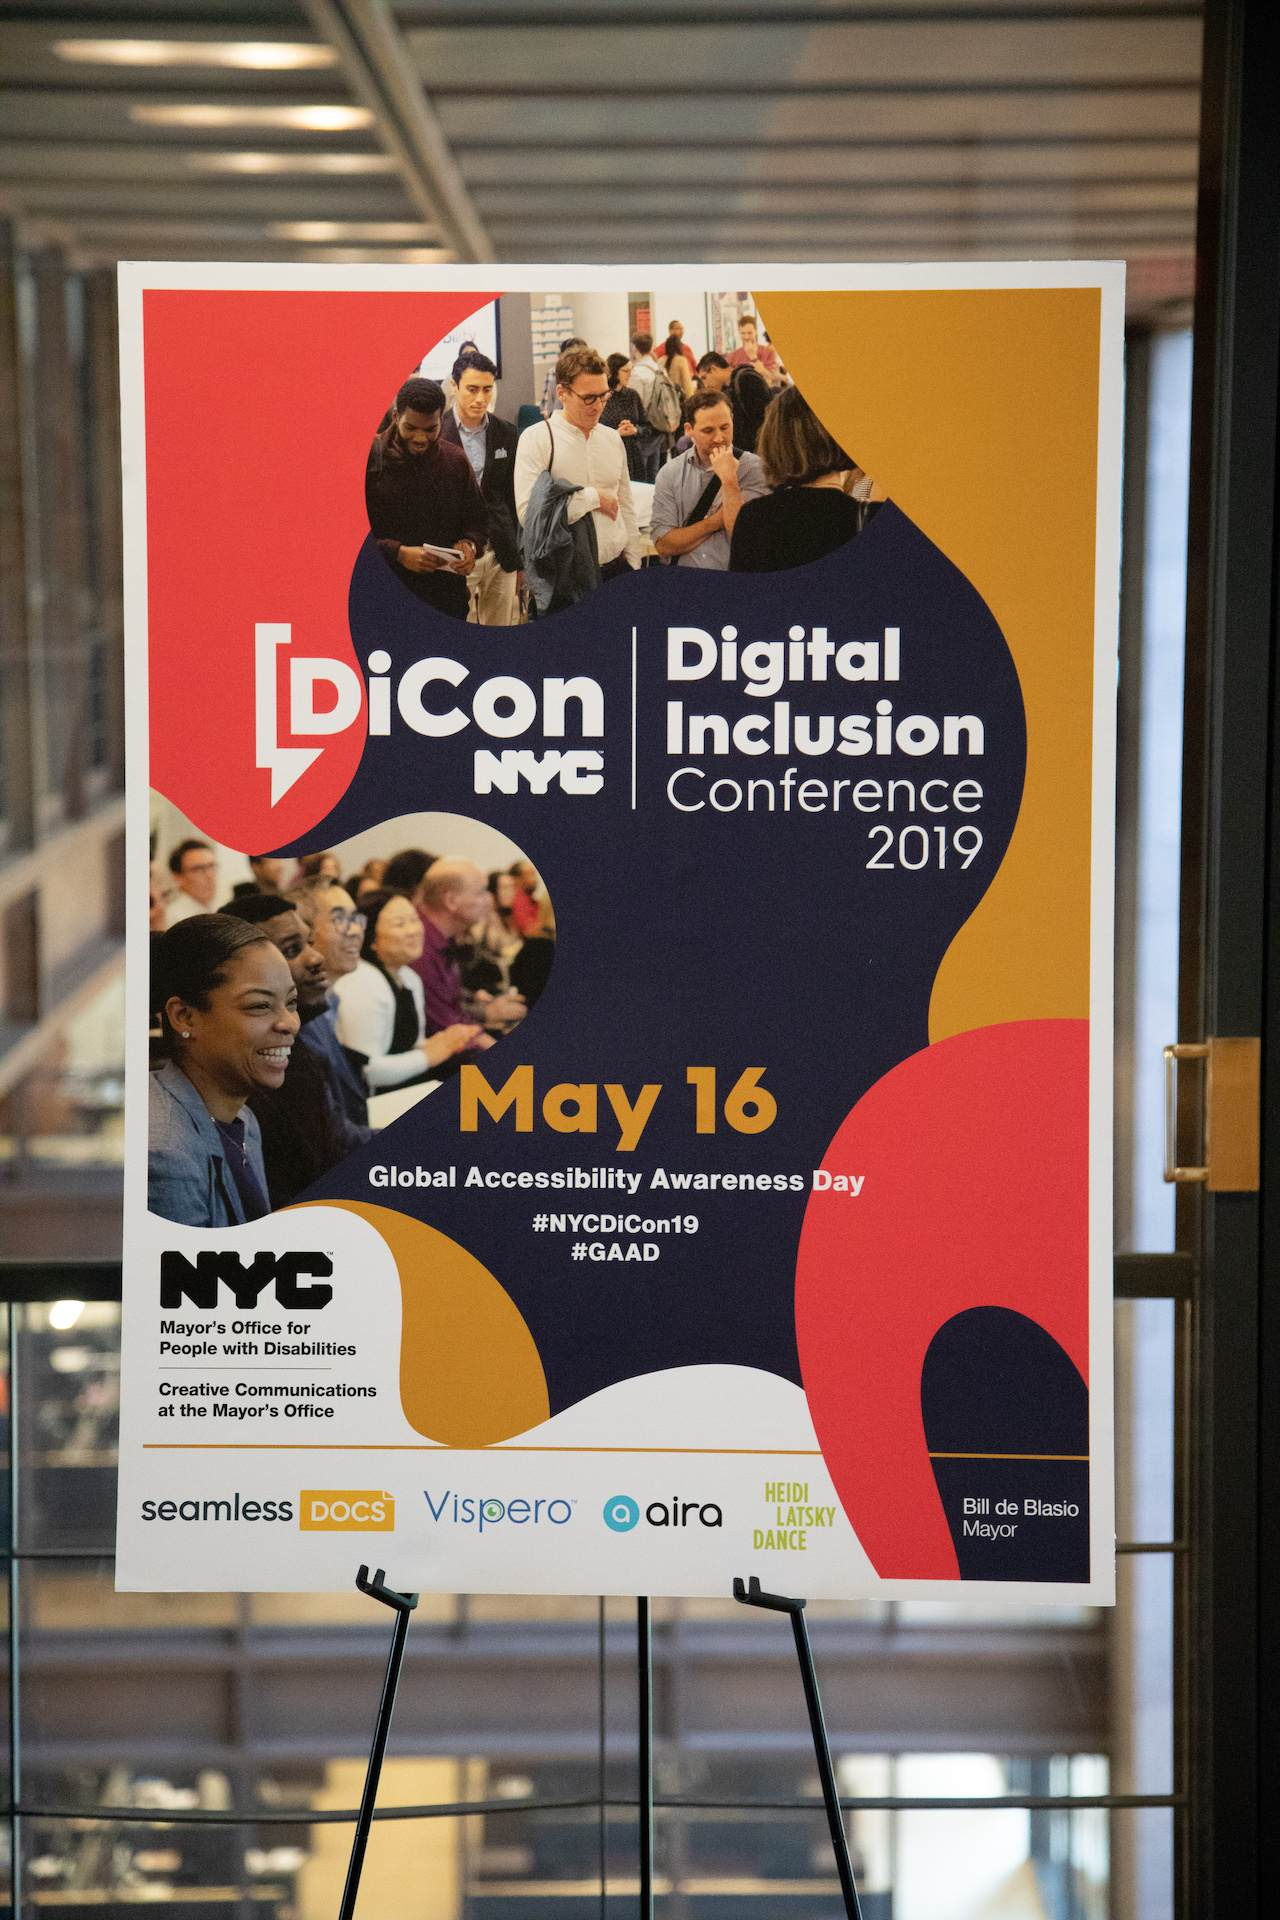 DiCon NYC Digital Inclusion Conference event welcome signage.